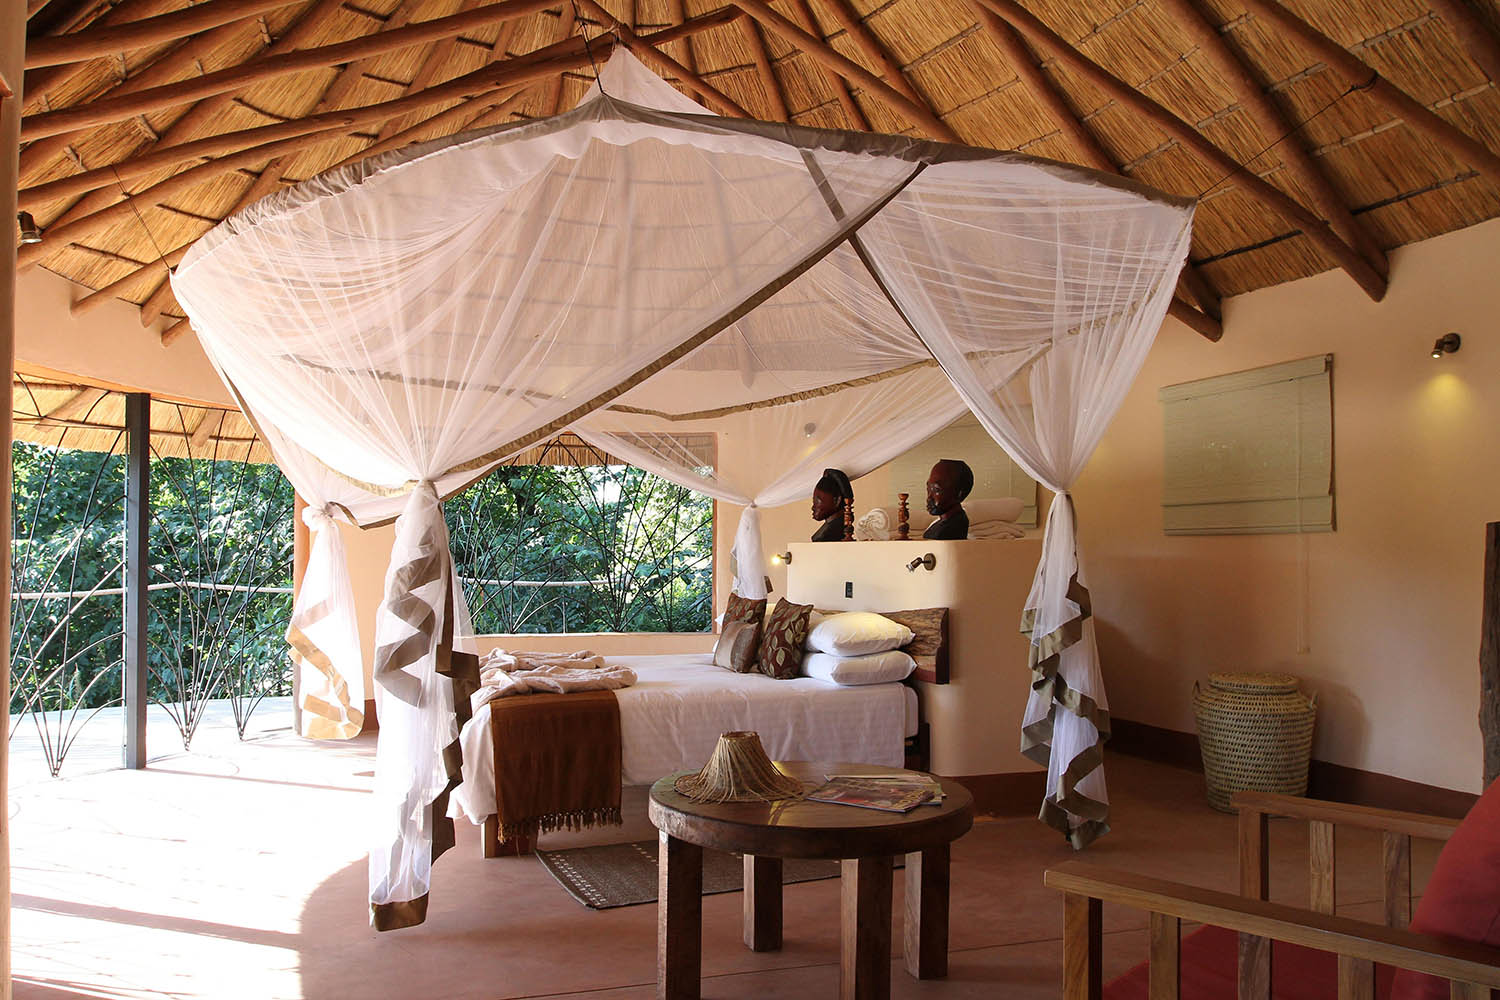 tongole wilderness lodge malawi-lodges-malawian-style-nkhotakota-rooms-bed-table